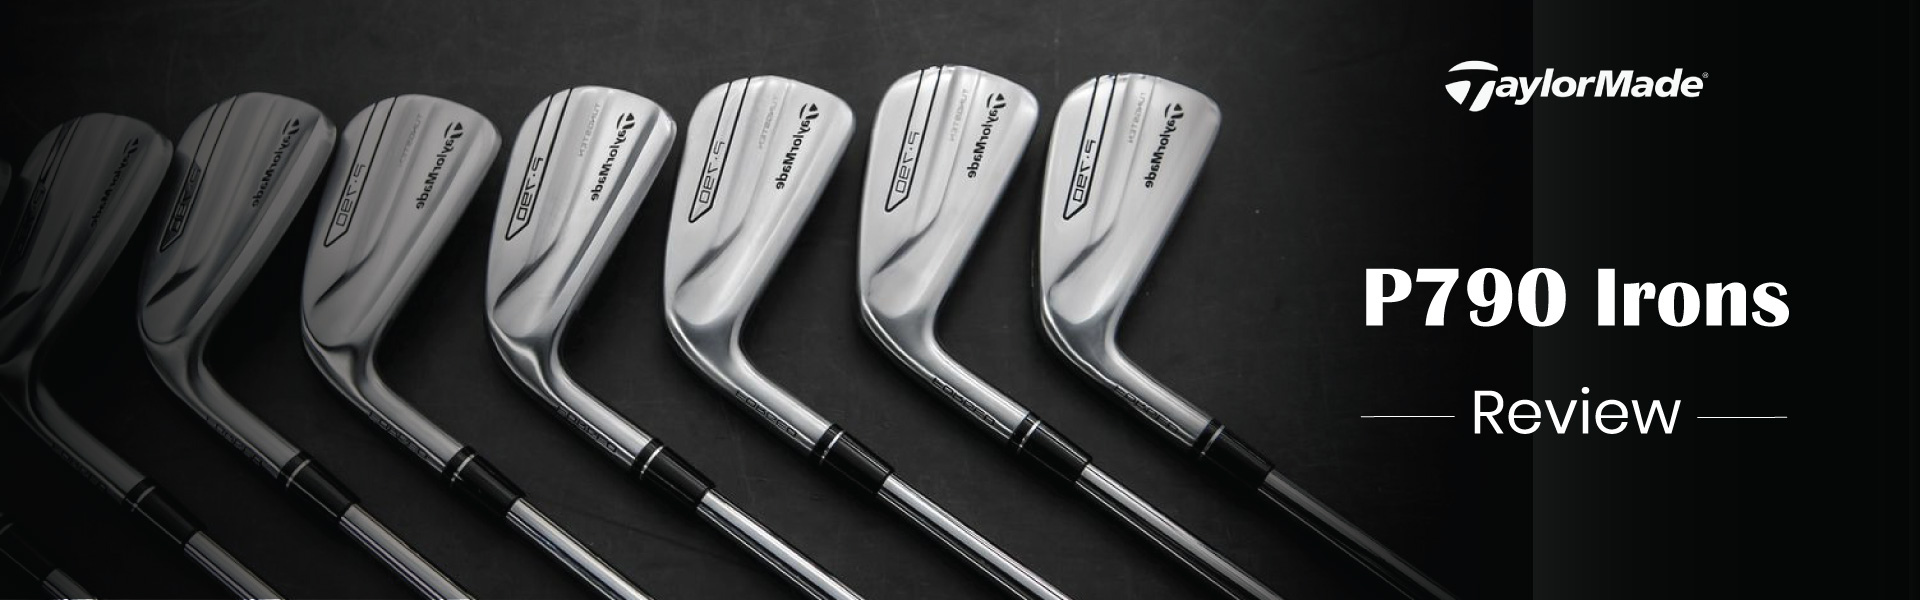 REVIEW: TaylorMade P790 Irons